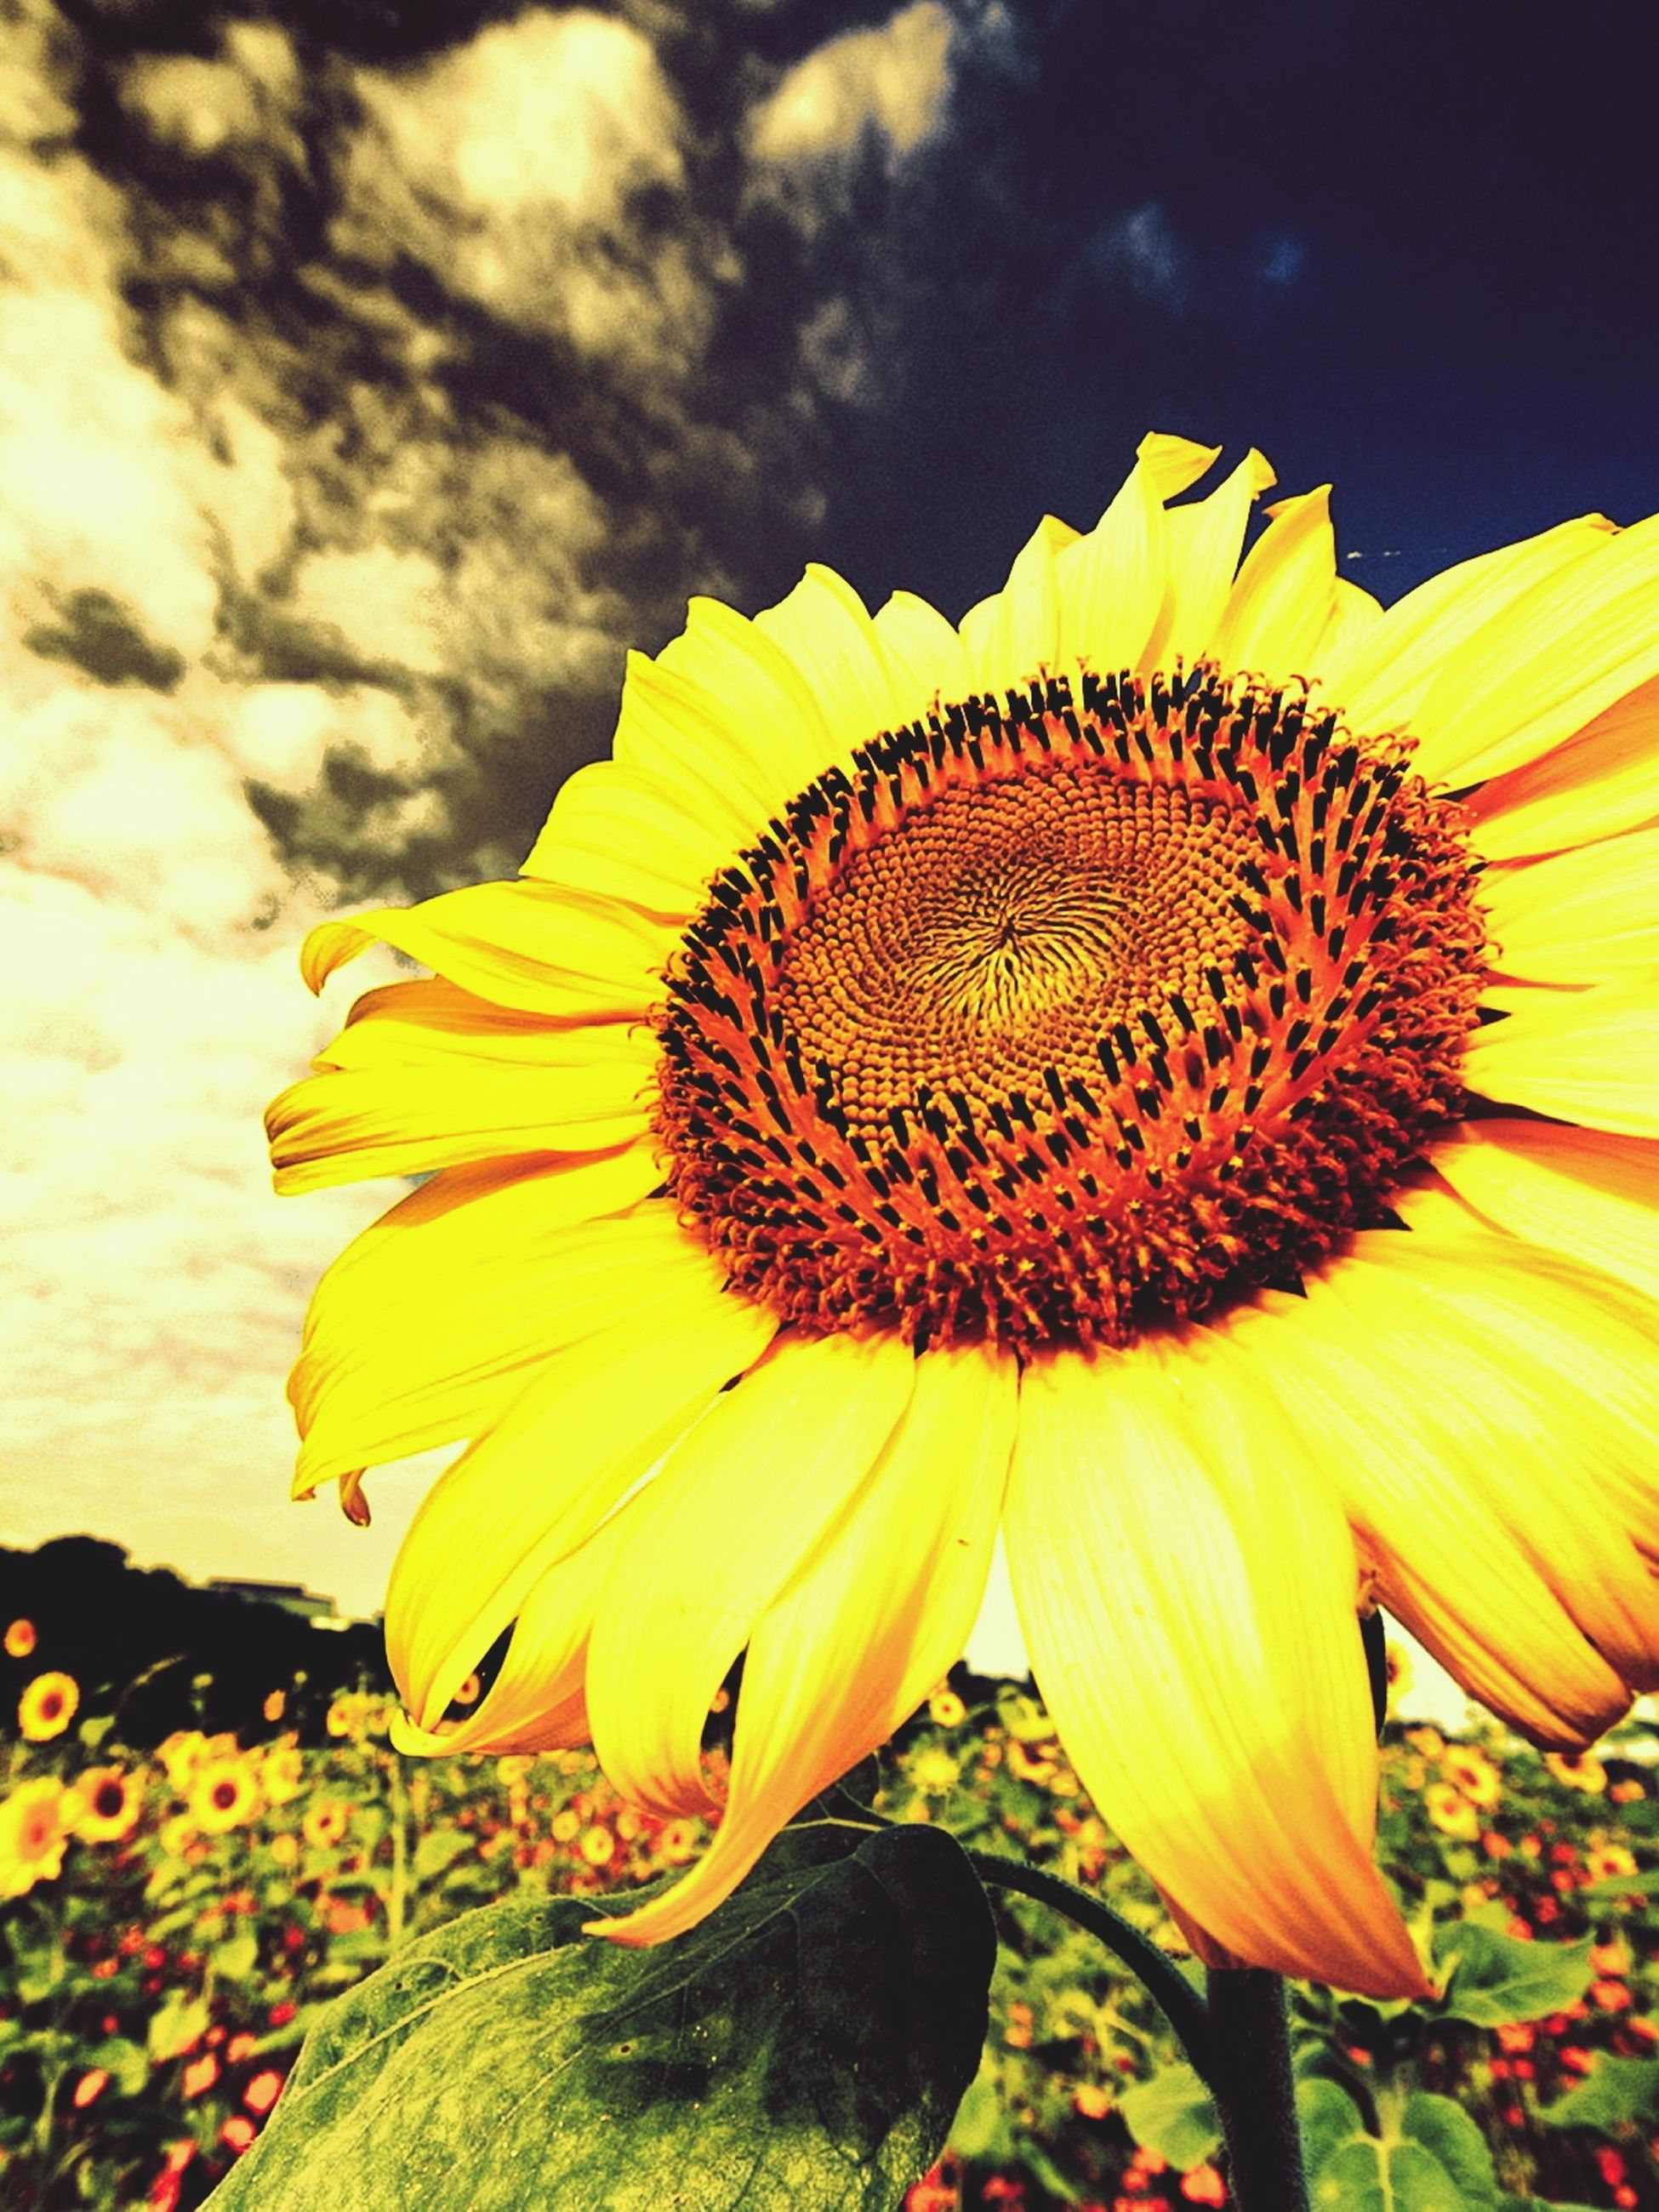 flower, yellow, petal, freshness, flower head, fragility, sunflower, growth, beauty in nature, pollen, sky, single flower, blooming, plant, nature, close-up, field, in bloom, focus on foreground, outdoors